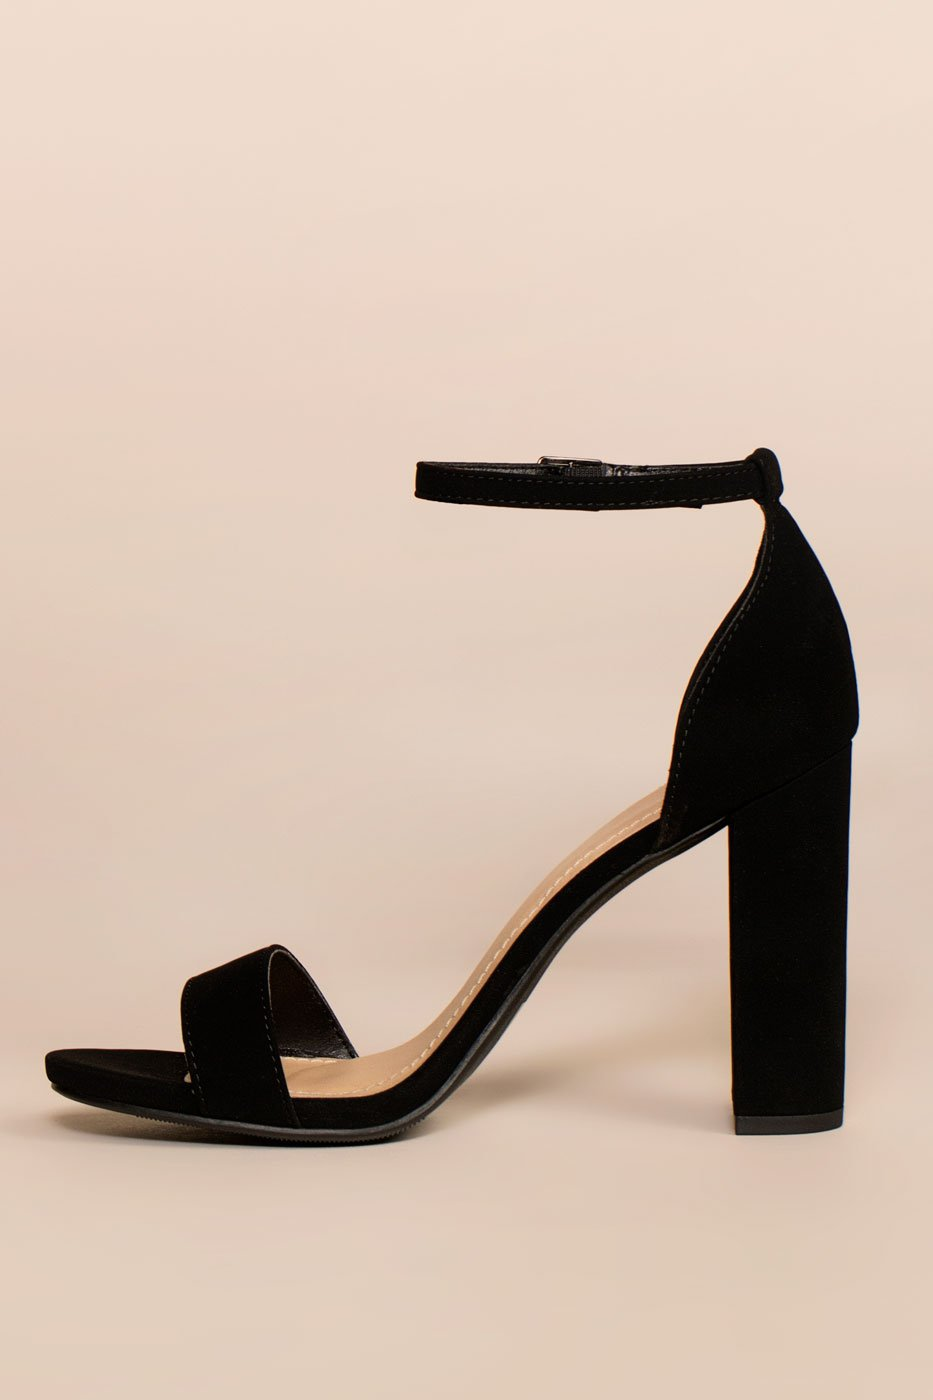 Shoes - Steal Your Attention Heels - Black